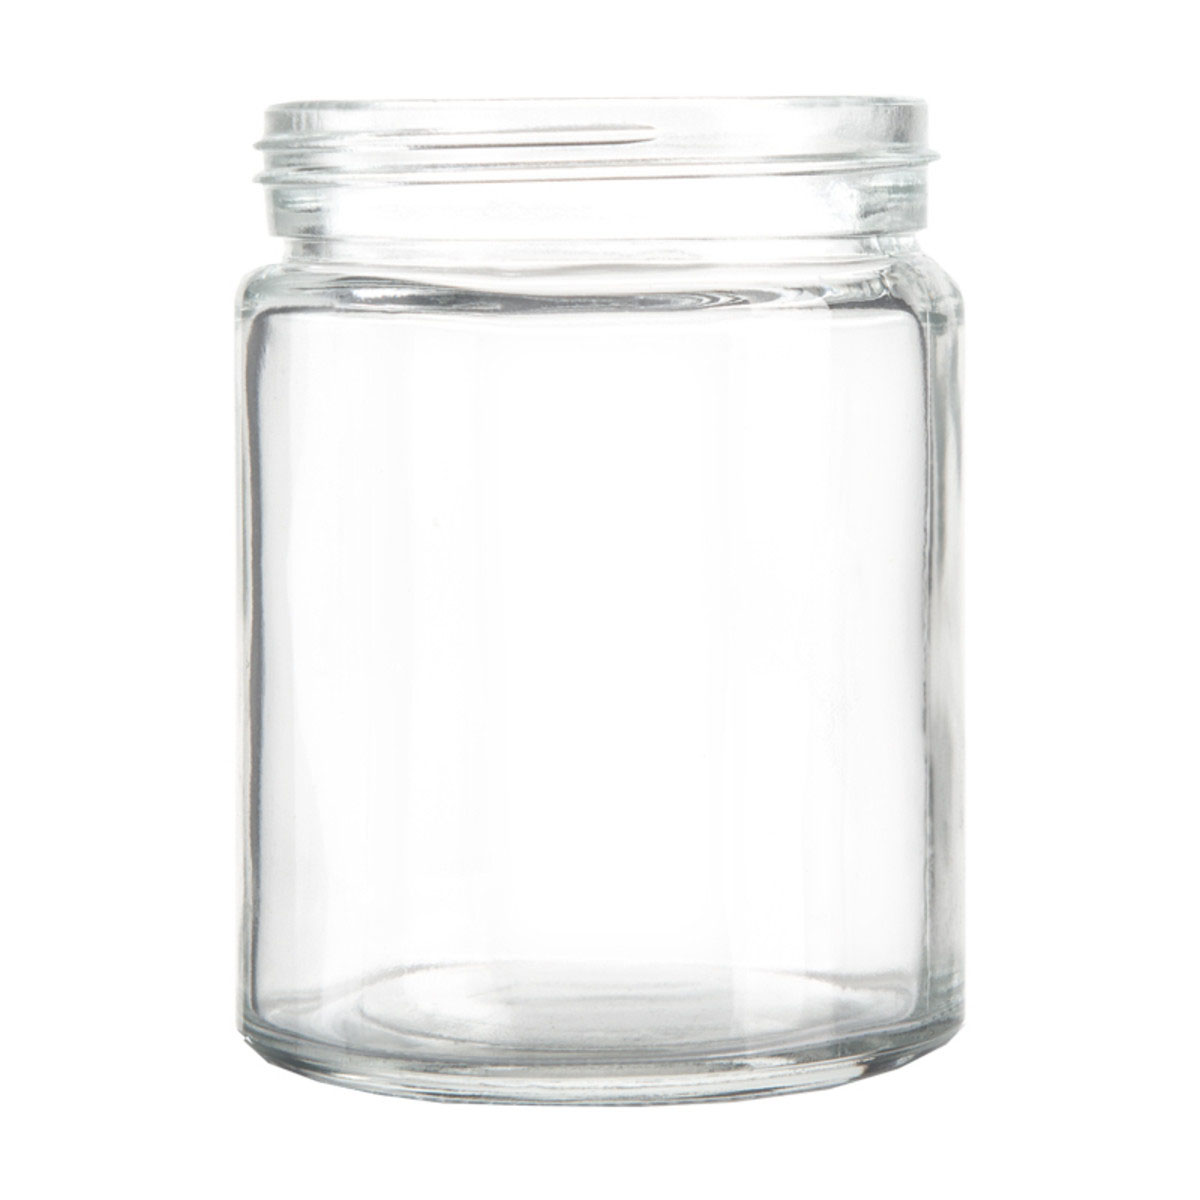 18oz Standard Glass Jar (48 Qty.)